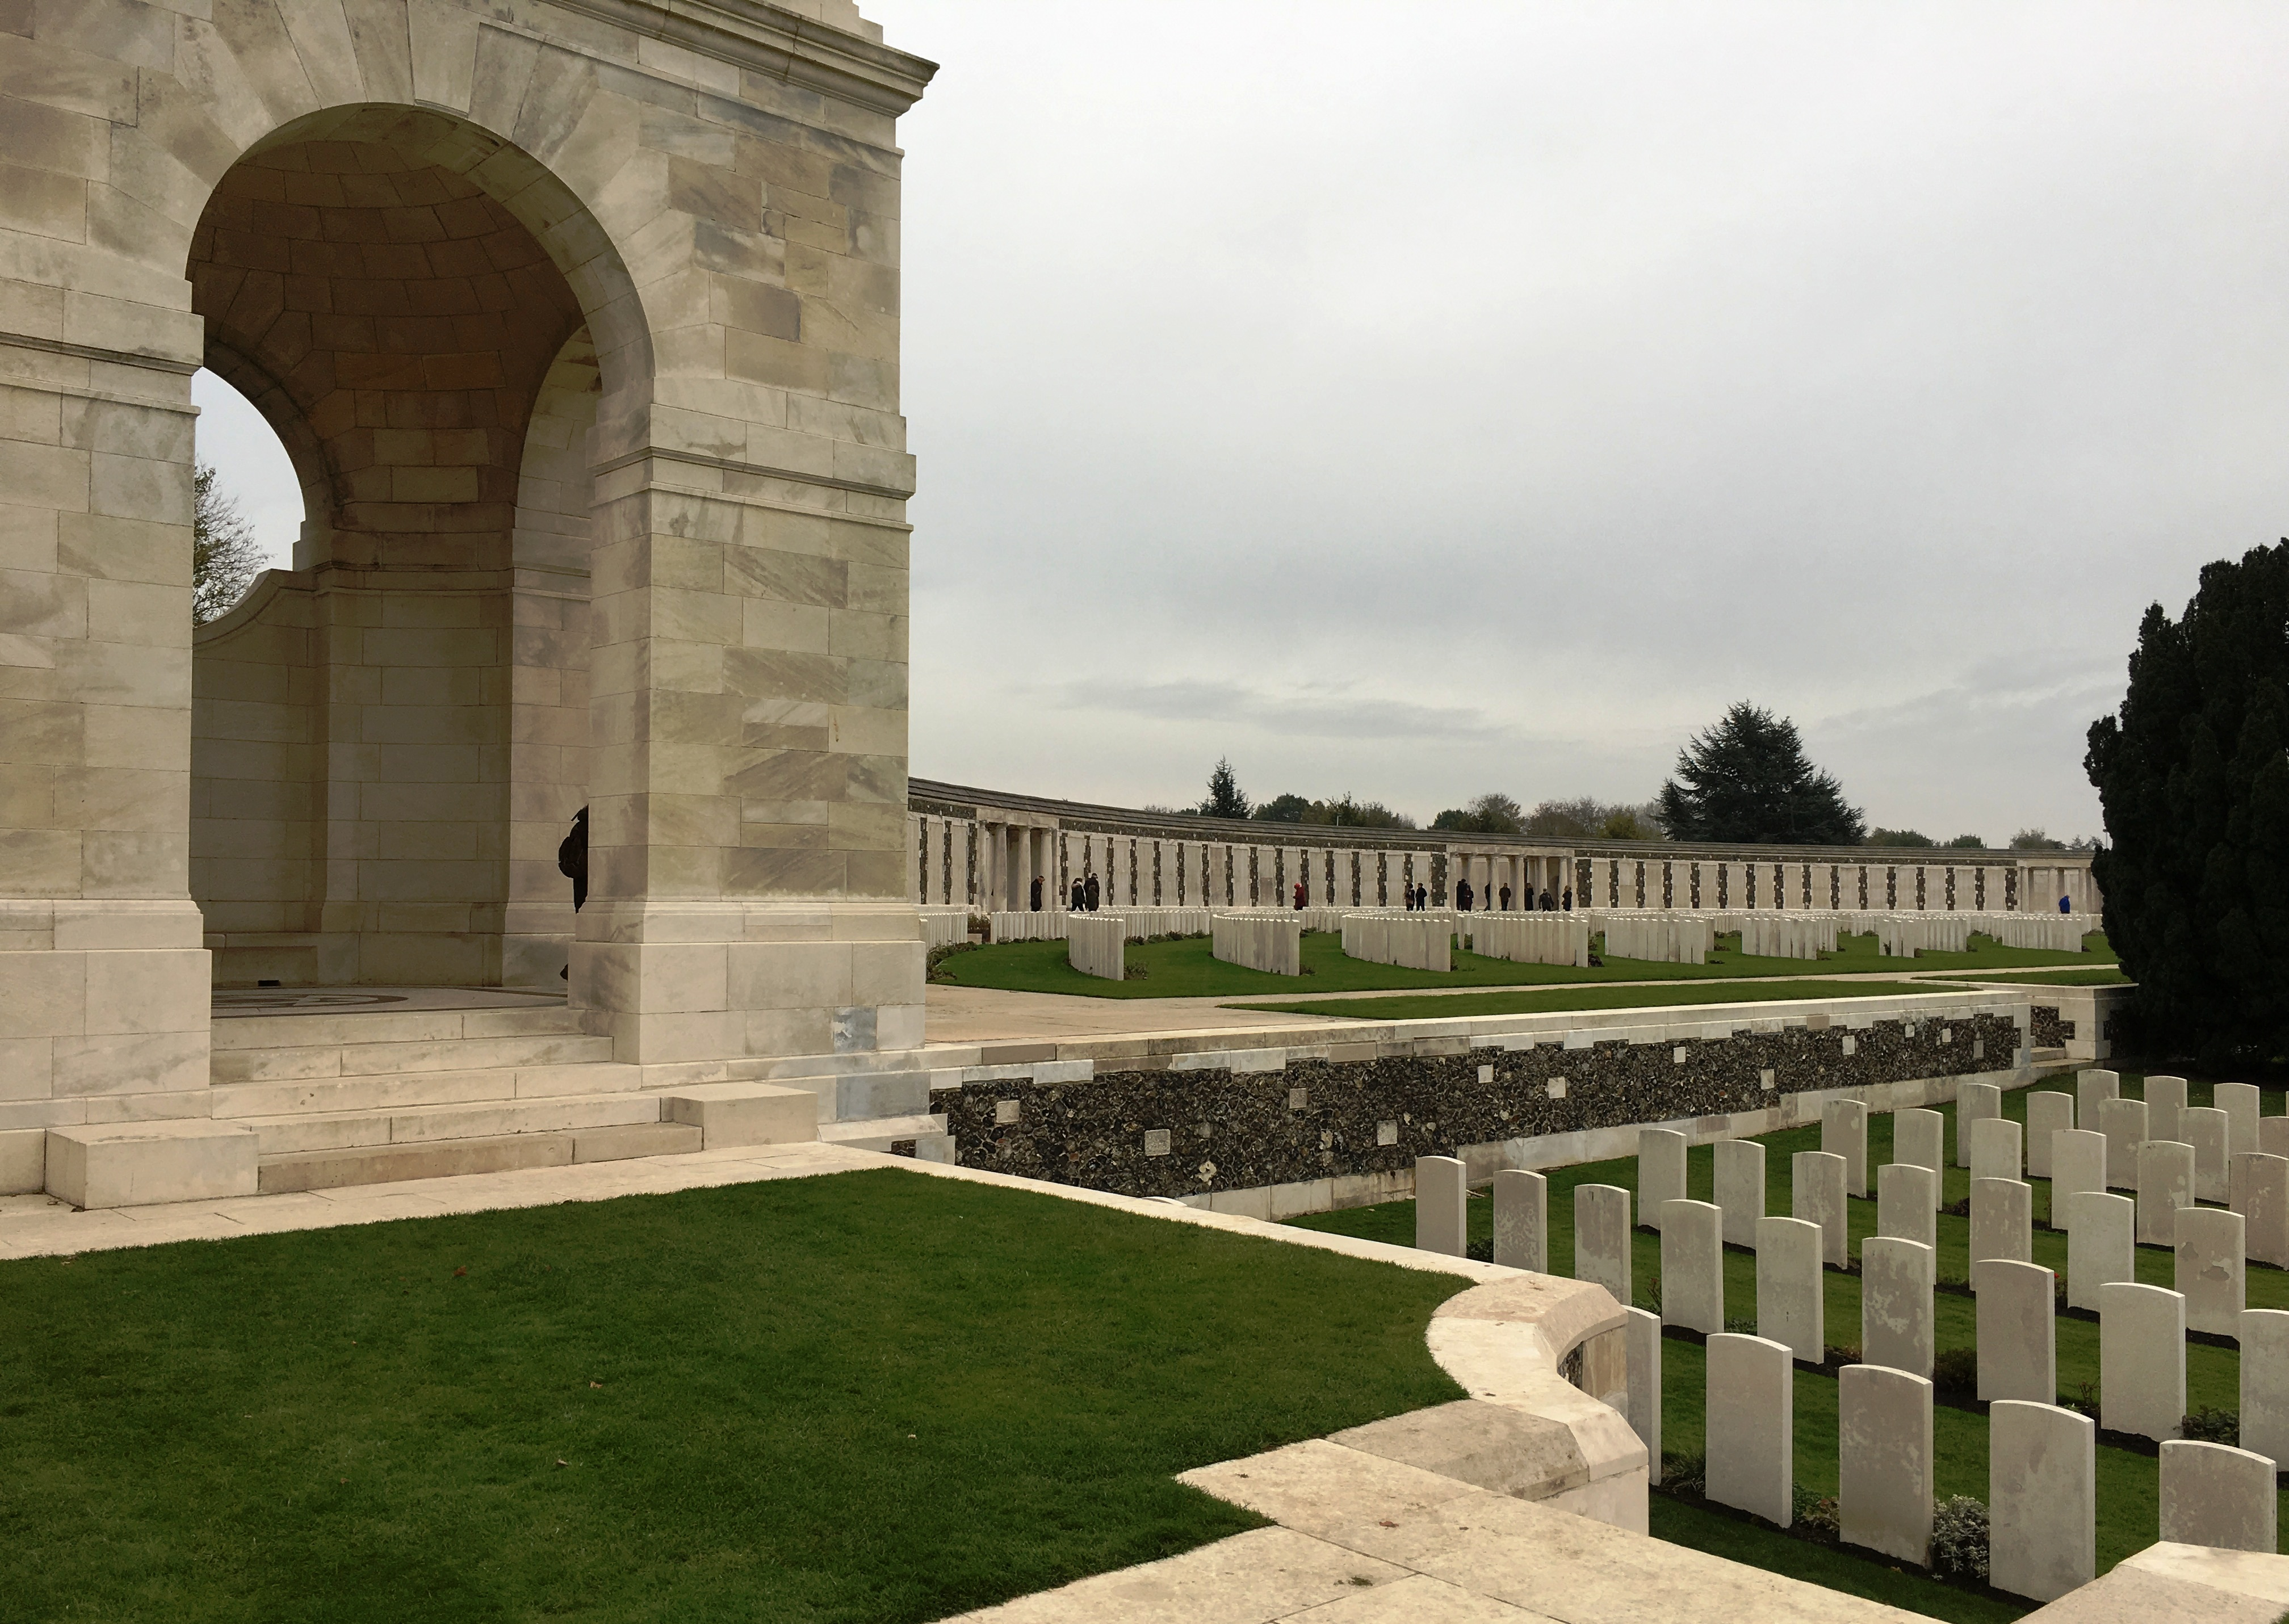 31-view-of-tyne-cot-and-the-wall-of-remembrance-ypres-salient